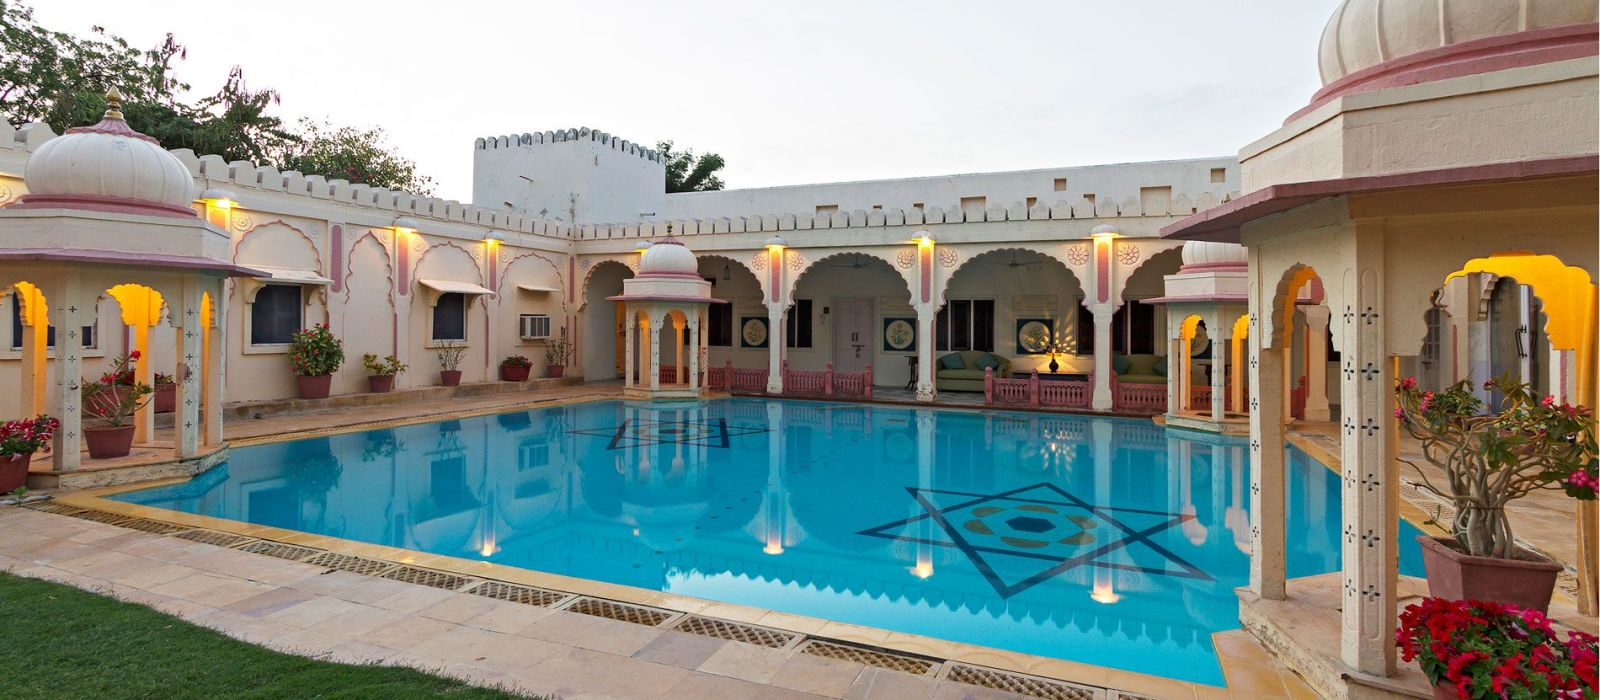 hotel-rohet-garh-north-india.jpg